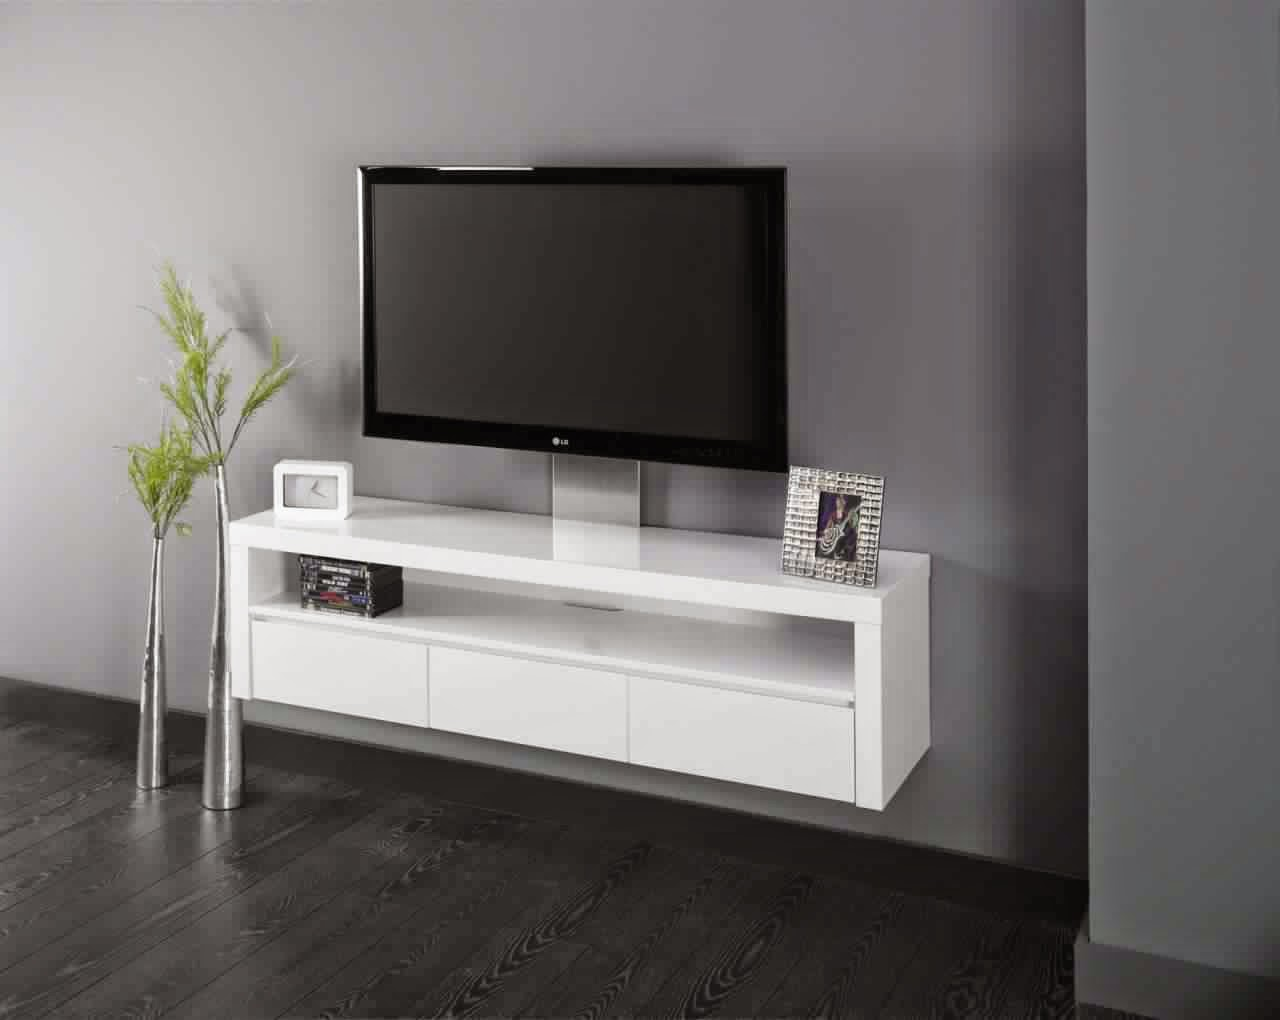 Meuble tv suspendre ikea - Meuble tele suspendu design ...